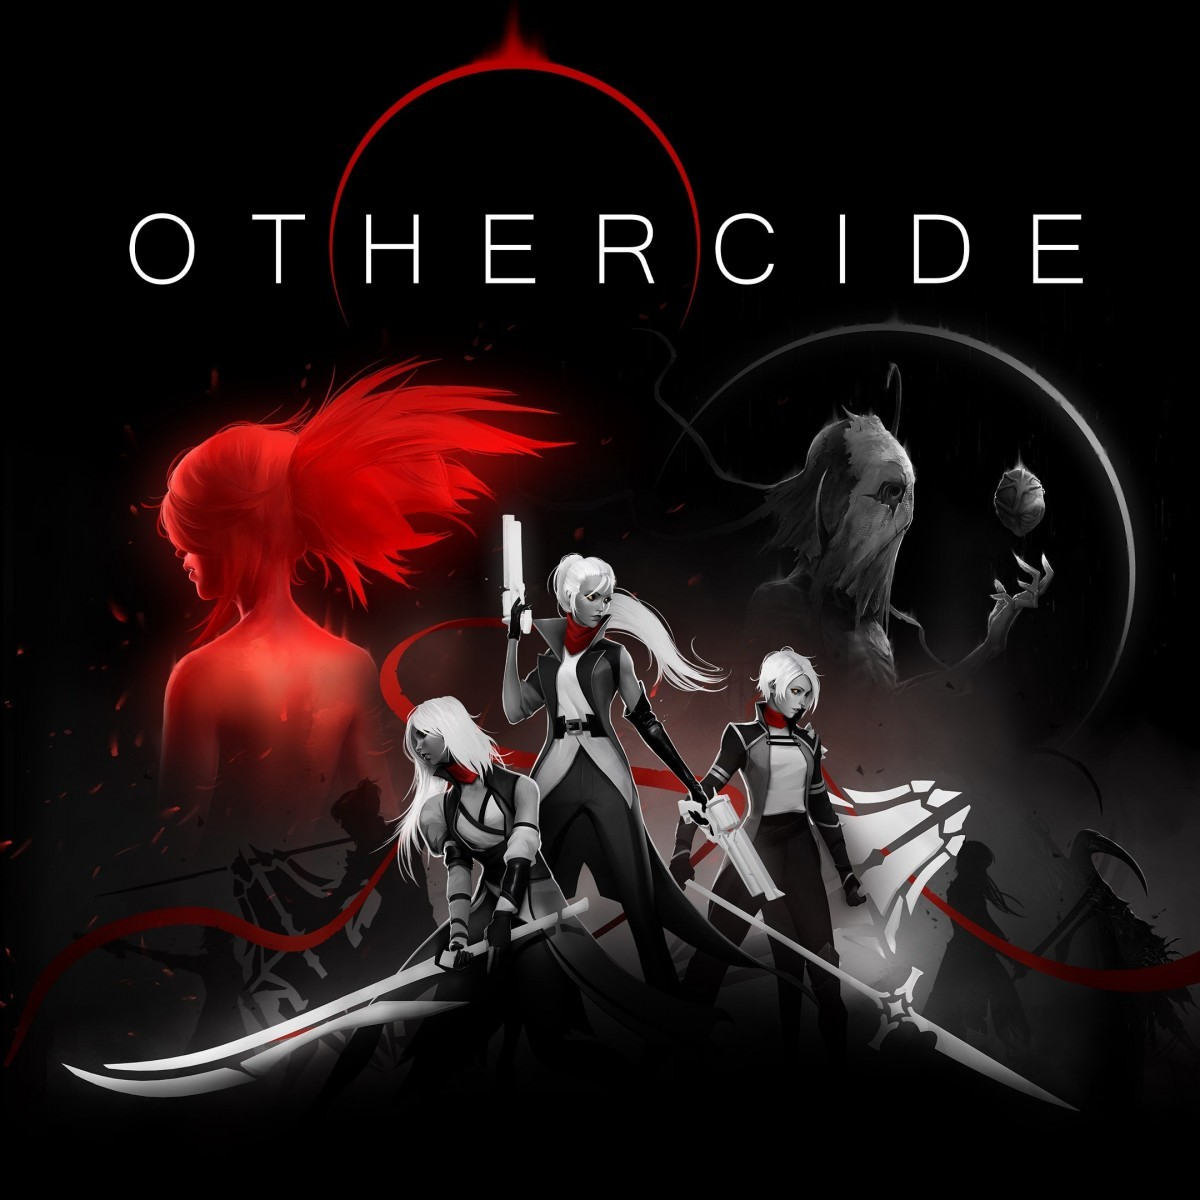 othercide-button-fin-1595876068490